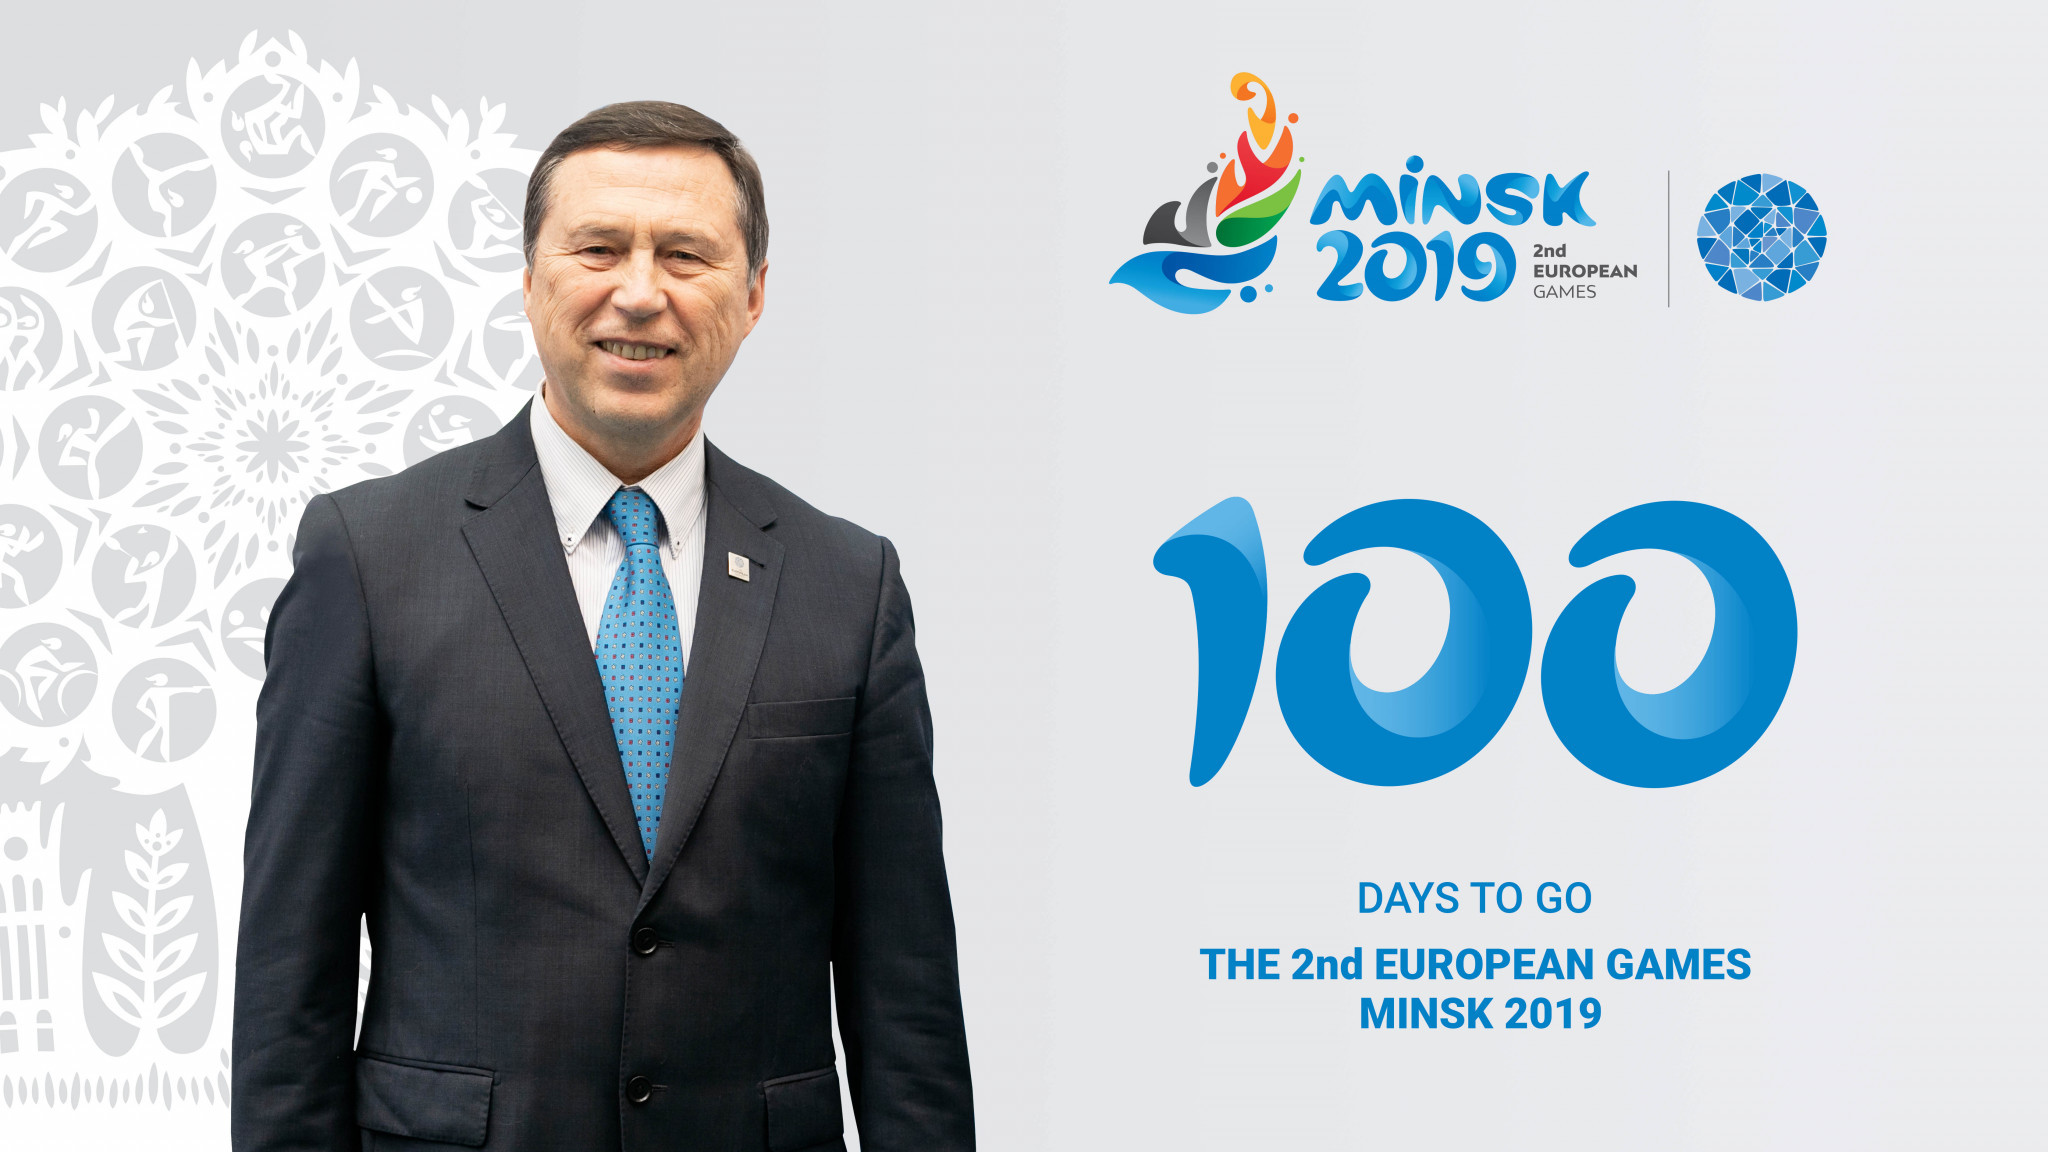 George Katulin and Minsk 2019 have marked 100 days to go ©Minsk 2019